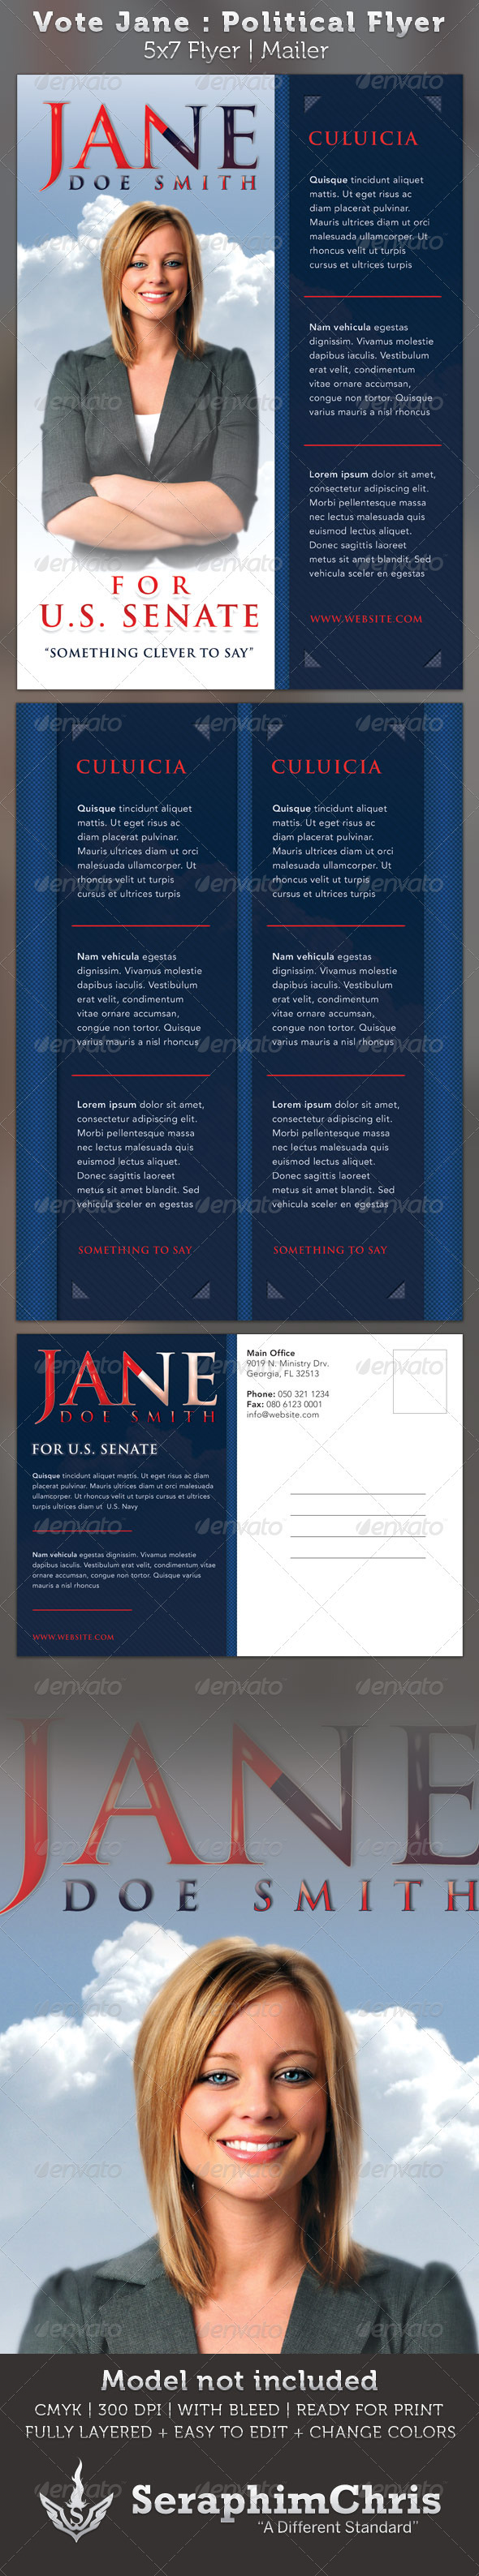 Vote Jane - 5x7 Political Flyer &amp; Mailer Template - Events Flyers